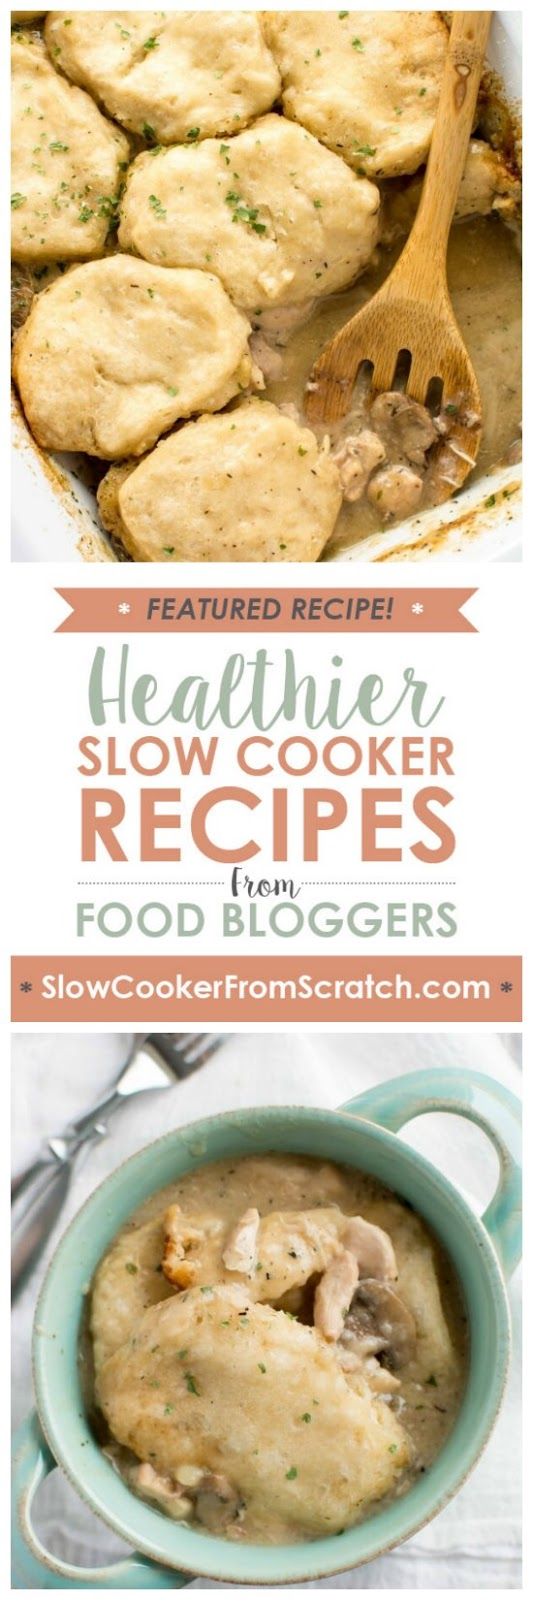 Casserole Crock Saturdays: Slow Cooker Chicken Gravy and Biscuits from Slow Cooker Gourmet found on SlowCookerFromScratch